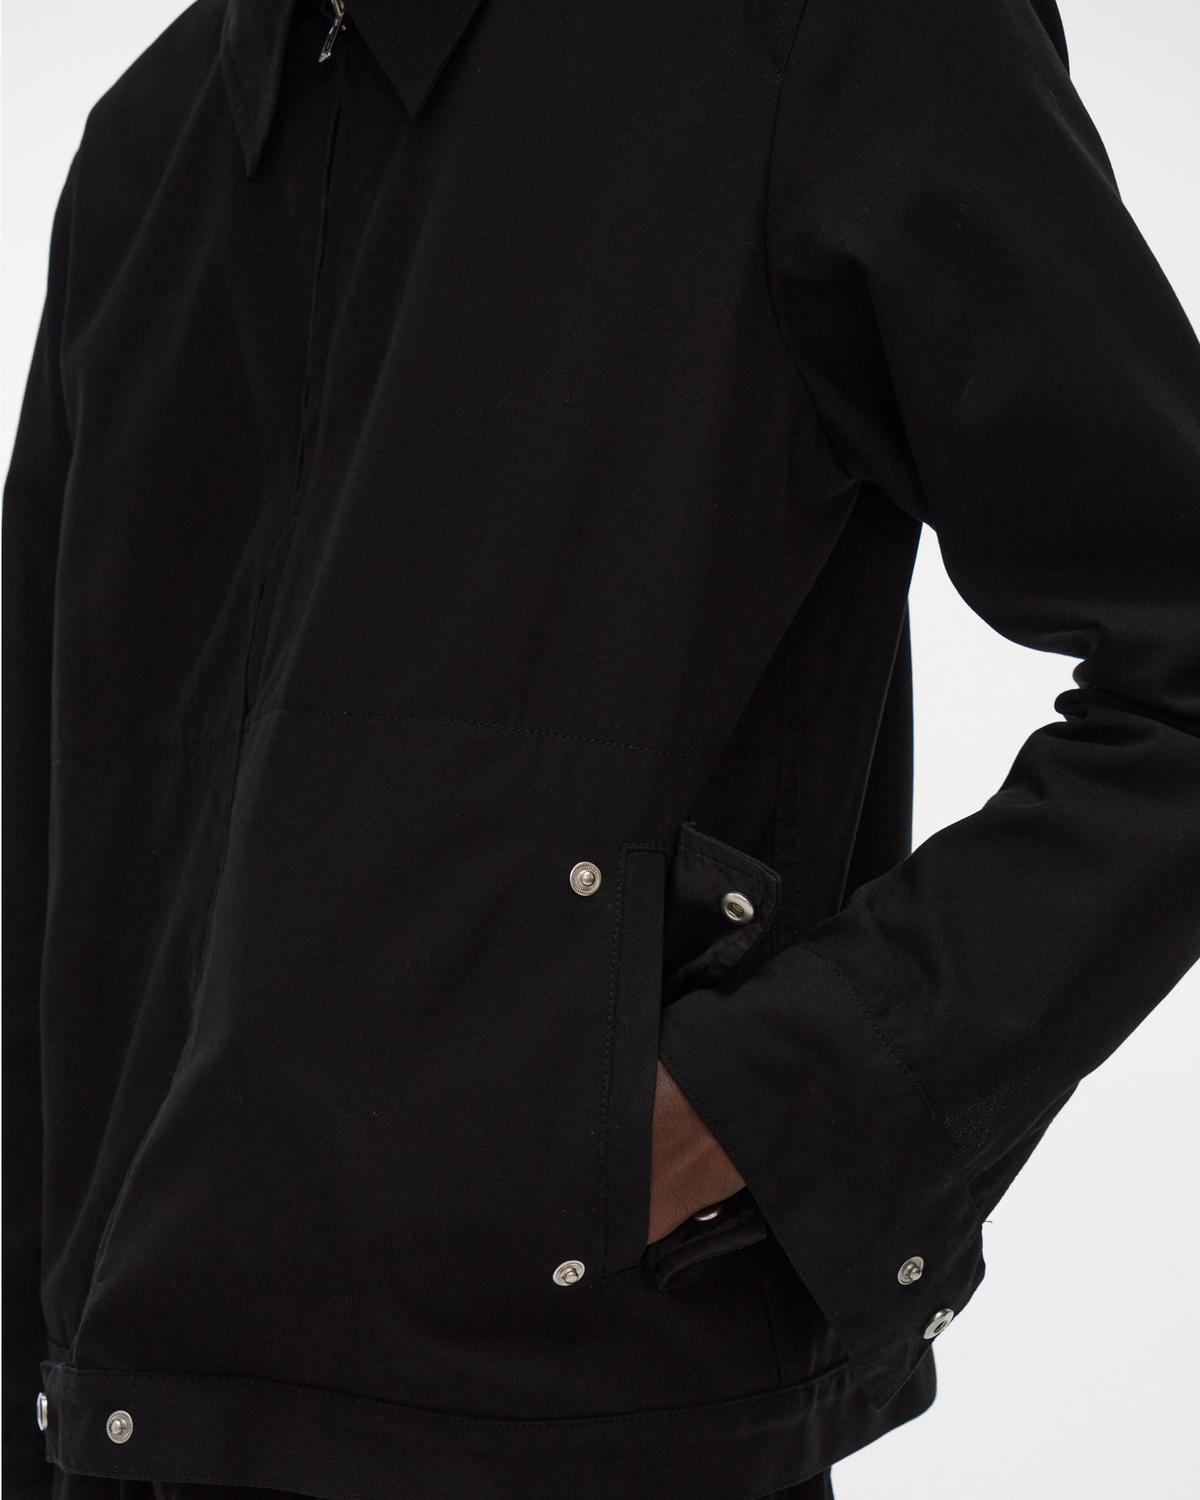 Crepe Zip Jacket